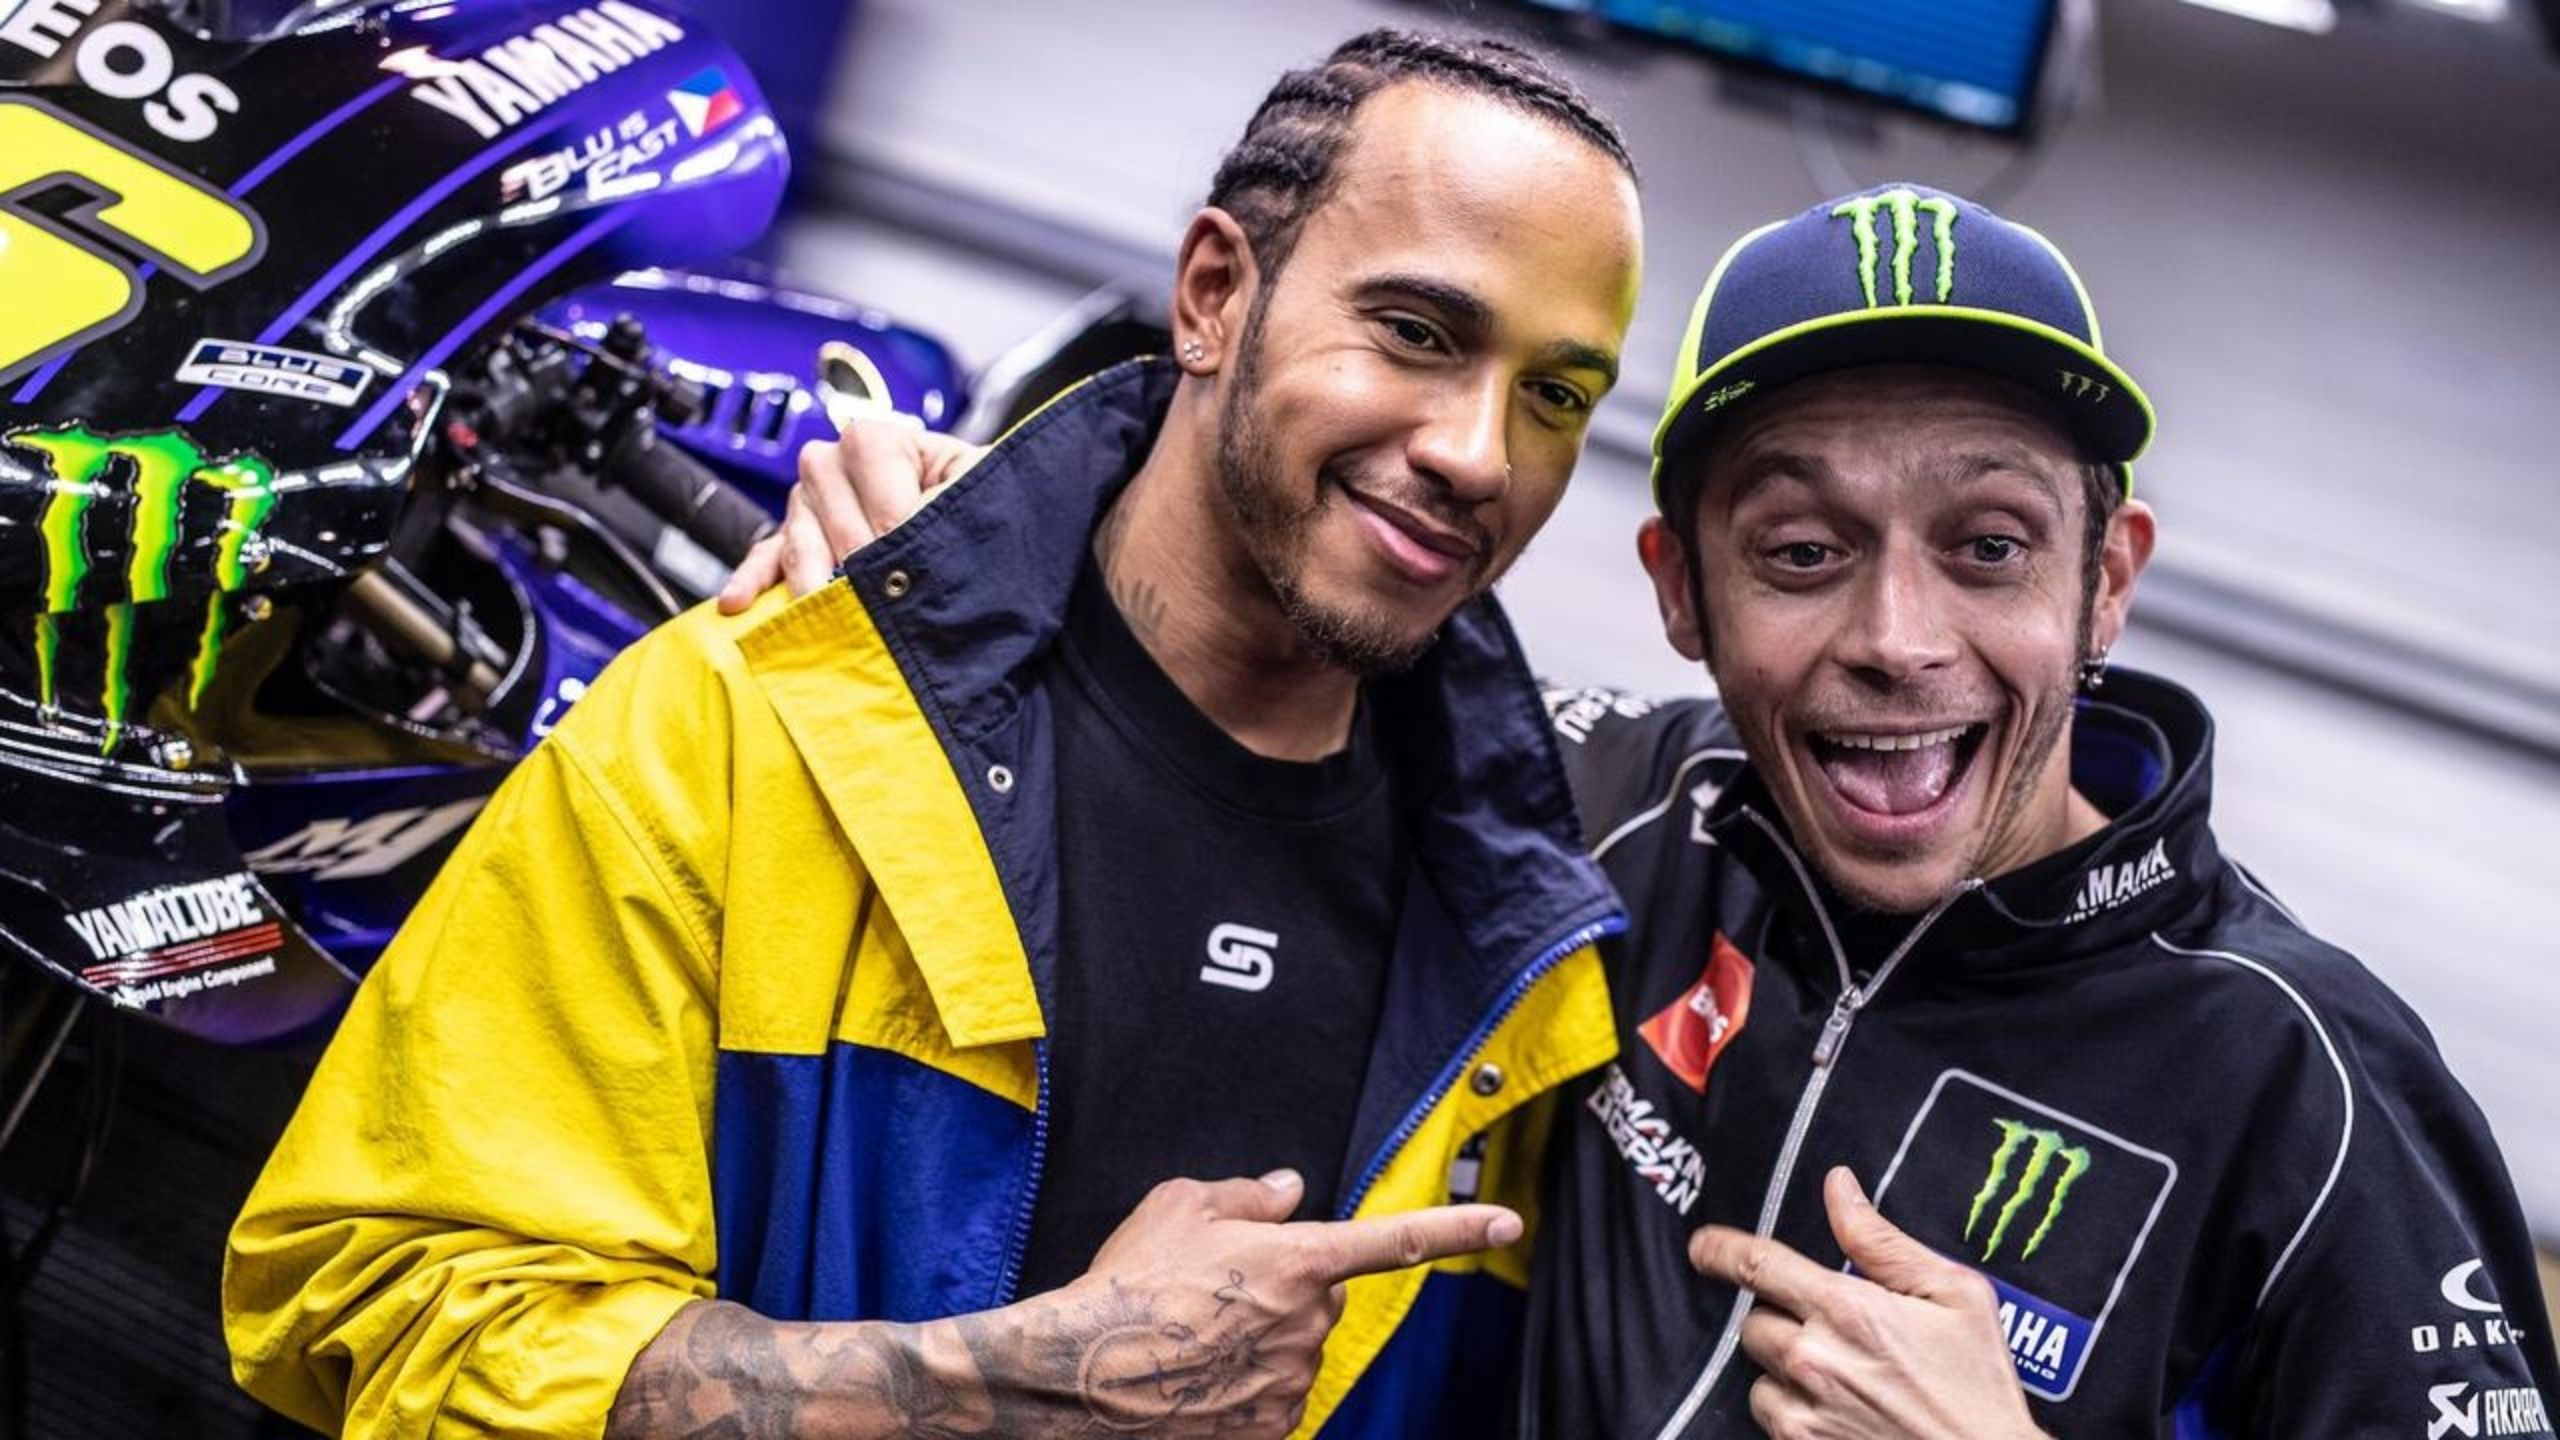 """The subject of money is always central"" - MotoGP legend Valentino Rossi is happy Lewis Hamilton has re-signed for Mercedes"